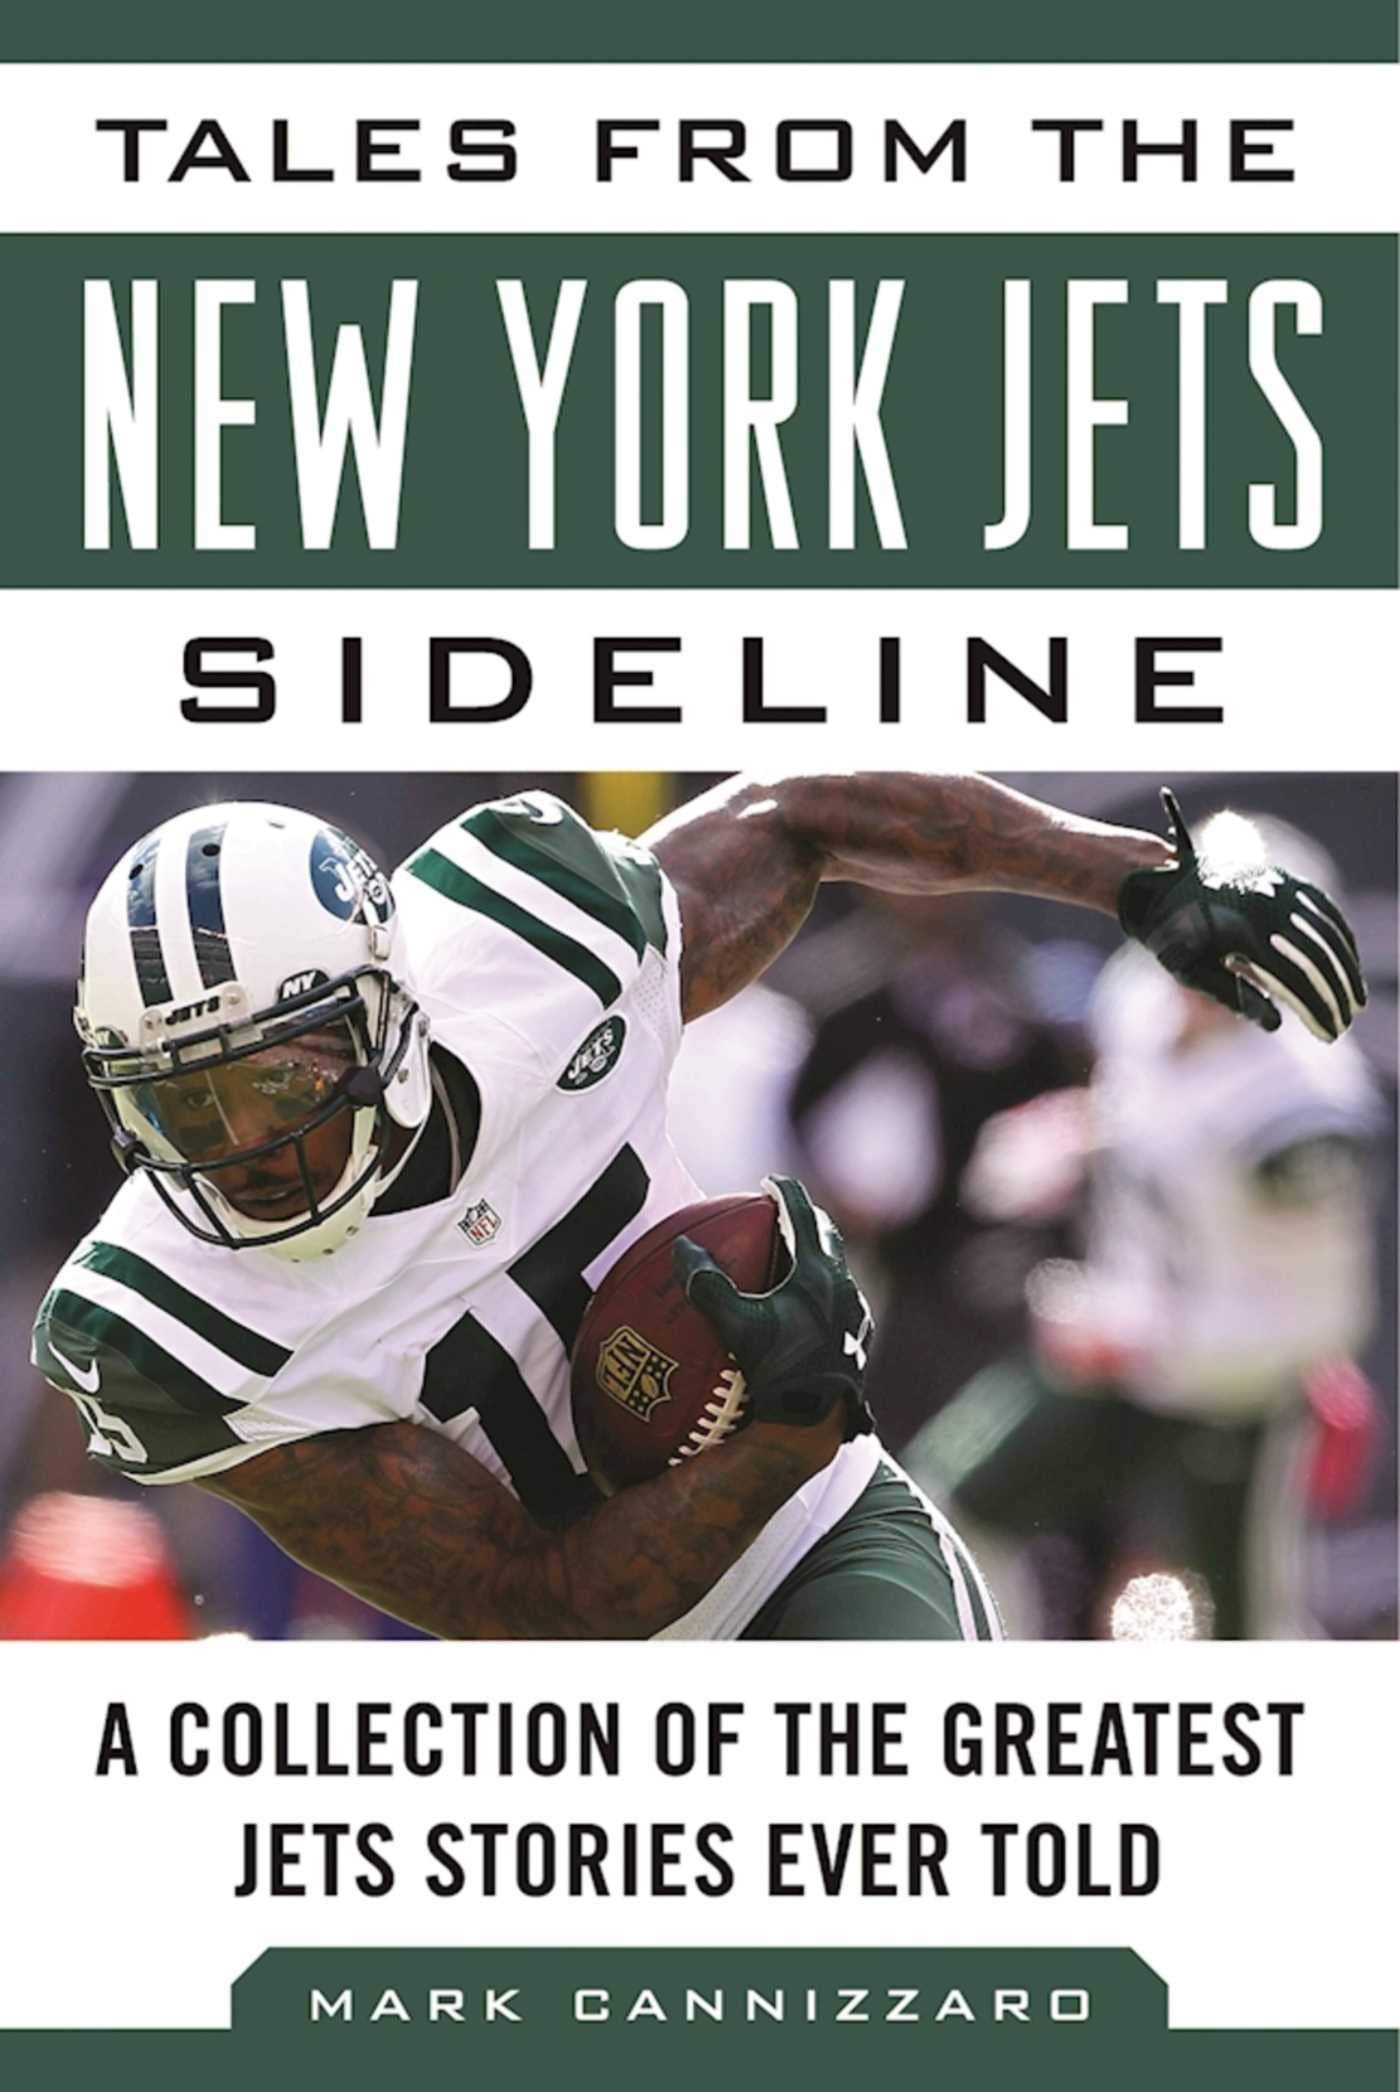 best selling new york jets jersey